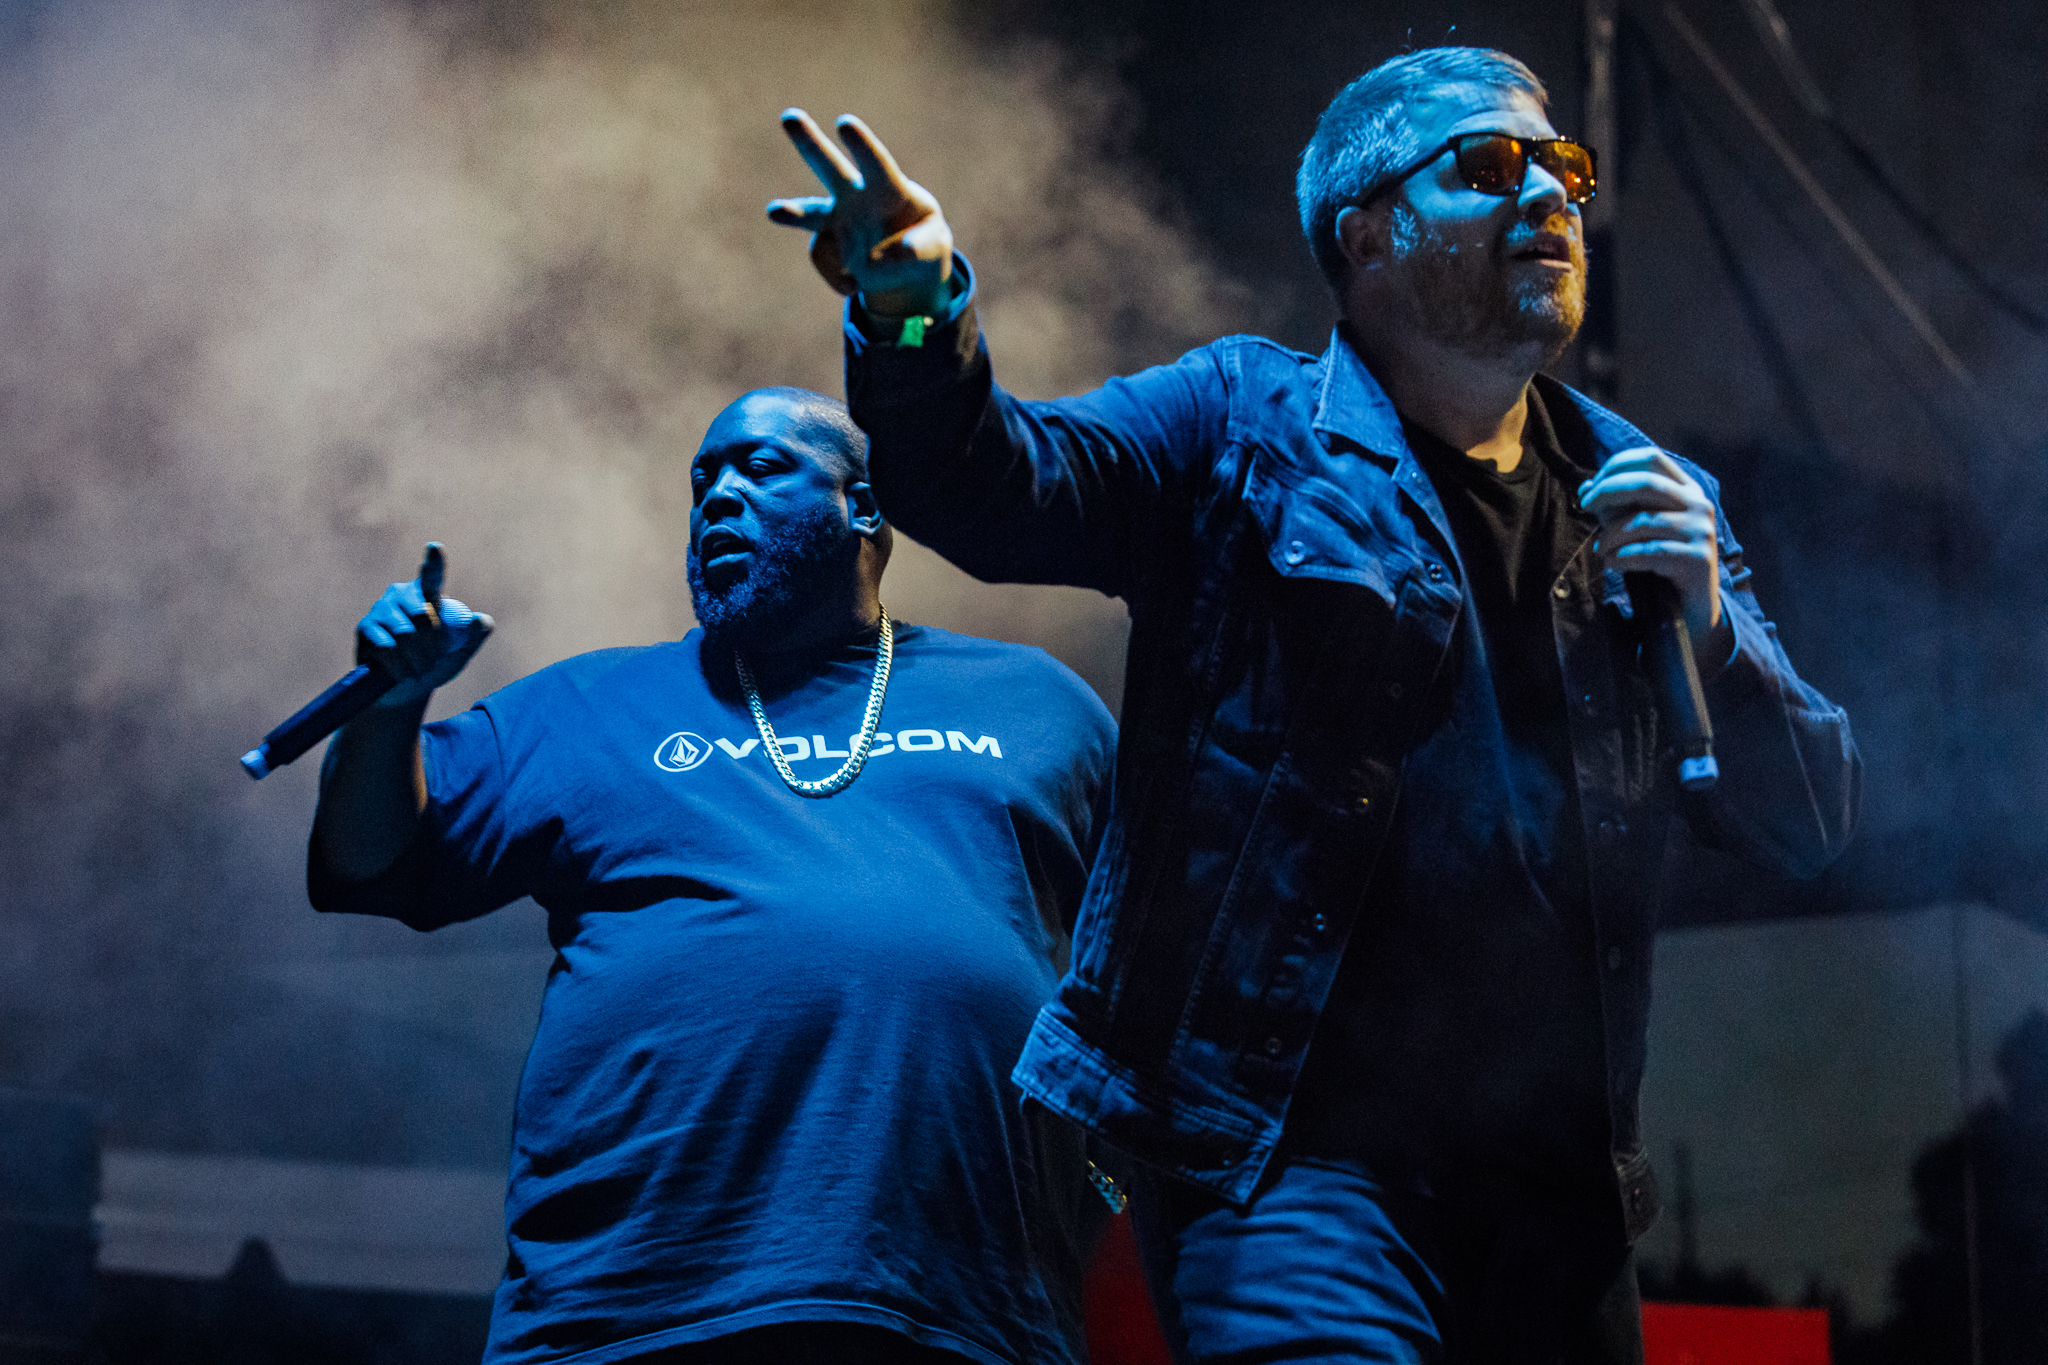 Run the Jewels performing at Hopscotch Music Festival 2017 in Raleigh, NC on September 8th, 2017 (photo by Matt Condon /  @arcane93 )